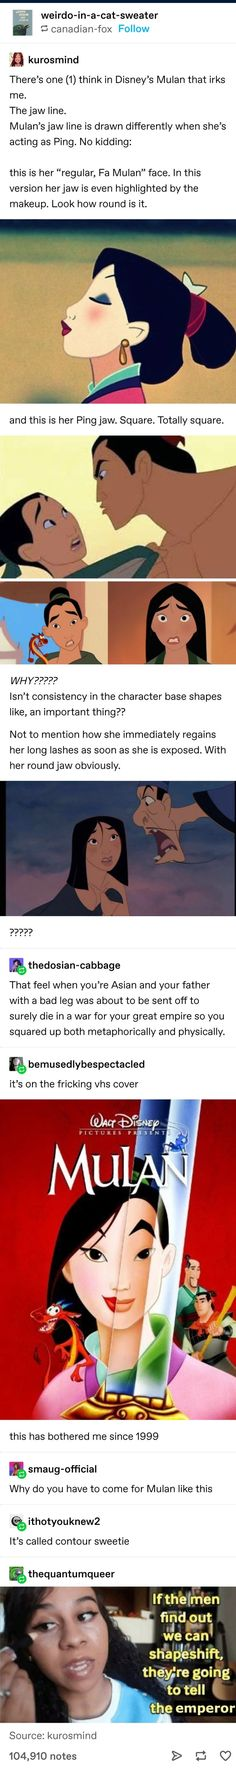 Picture memes by Nep_The_Tiddie_Expert: 408 comments - iFunny :) Tumblr Funny, Funny Memes, Hilarious, Funny Tweets, Funny Quotes, Tumblr Posts, Disney And Dreamworks, Disney Pixar, Phineas Y Ferb